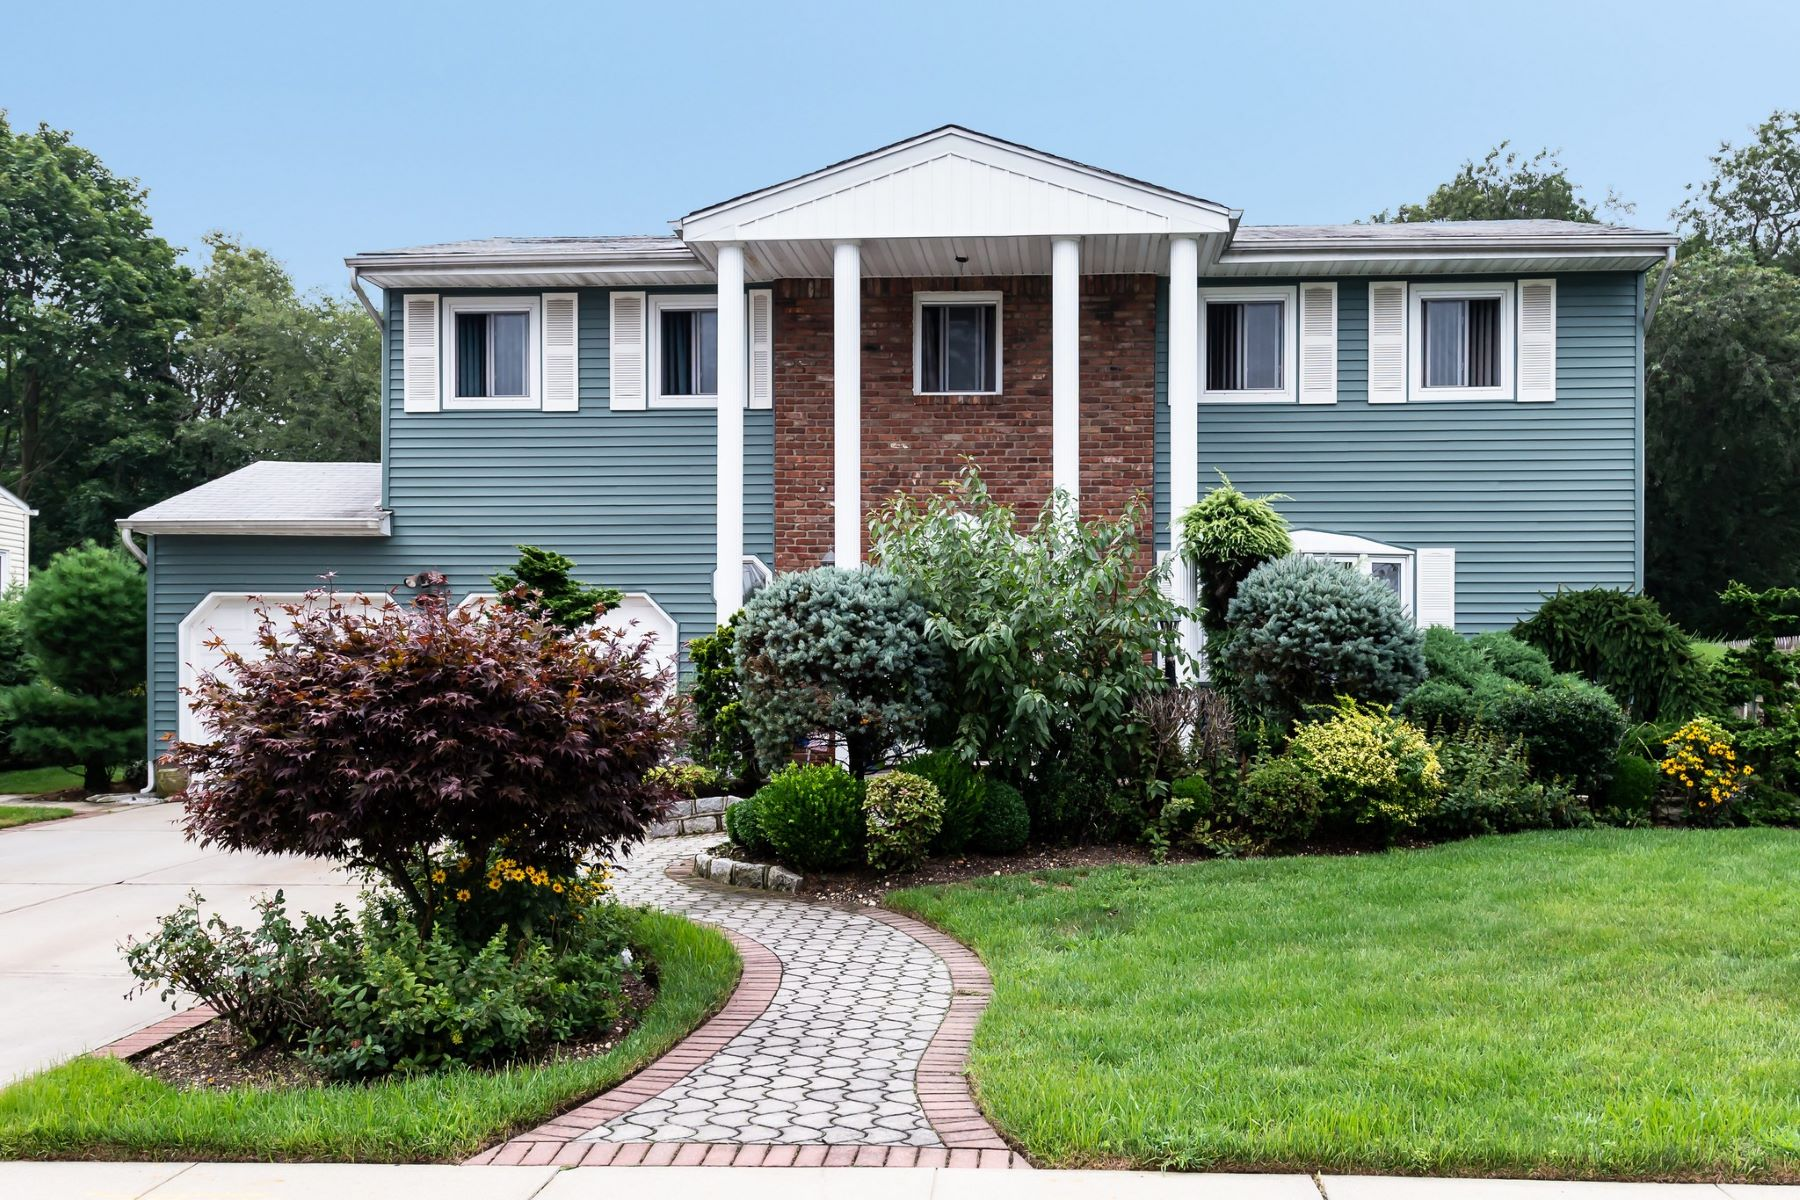 Single Family Homes for Sale at Amityville 13 Sunshine Lane Amityville, New York 11701 United States